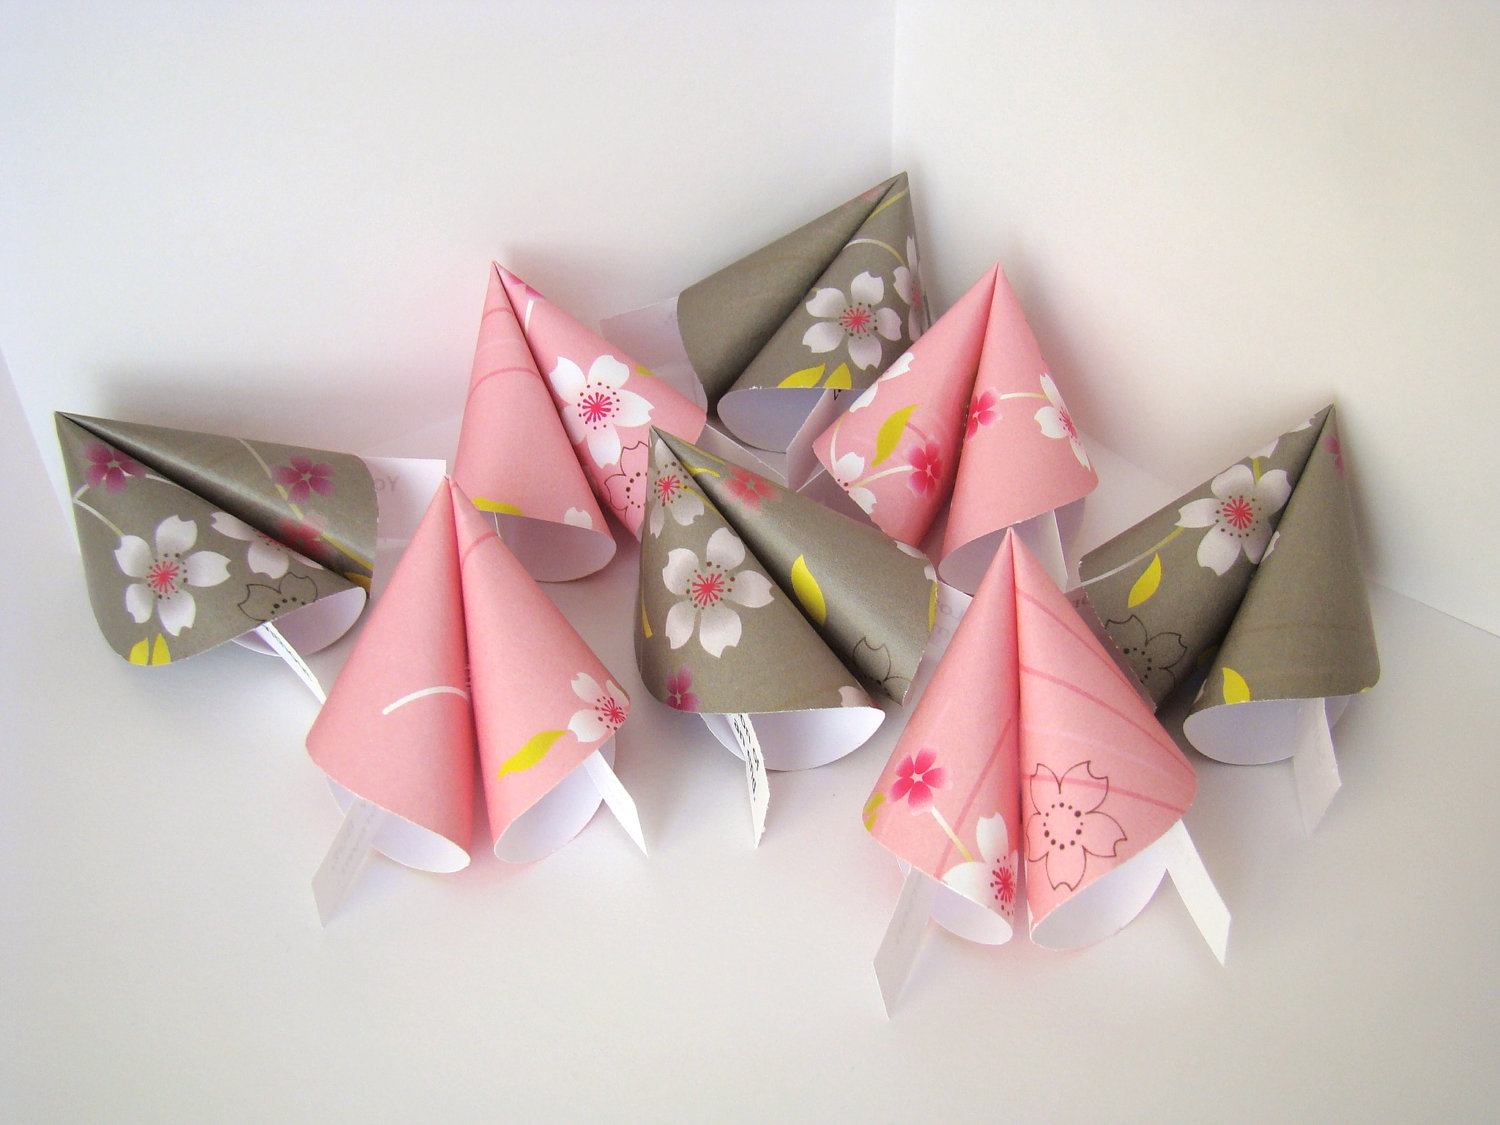 Fortune-A-Day - 365 Origami Fortune Cookies · Origami Delights ...